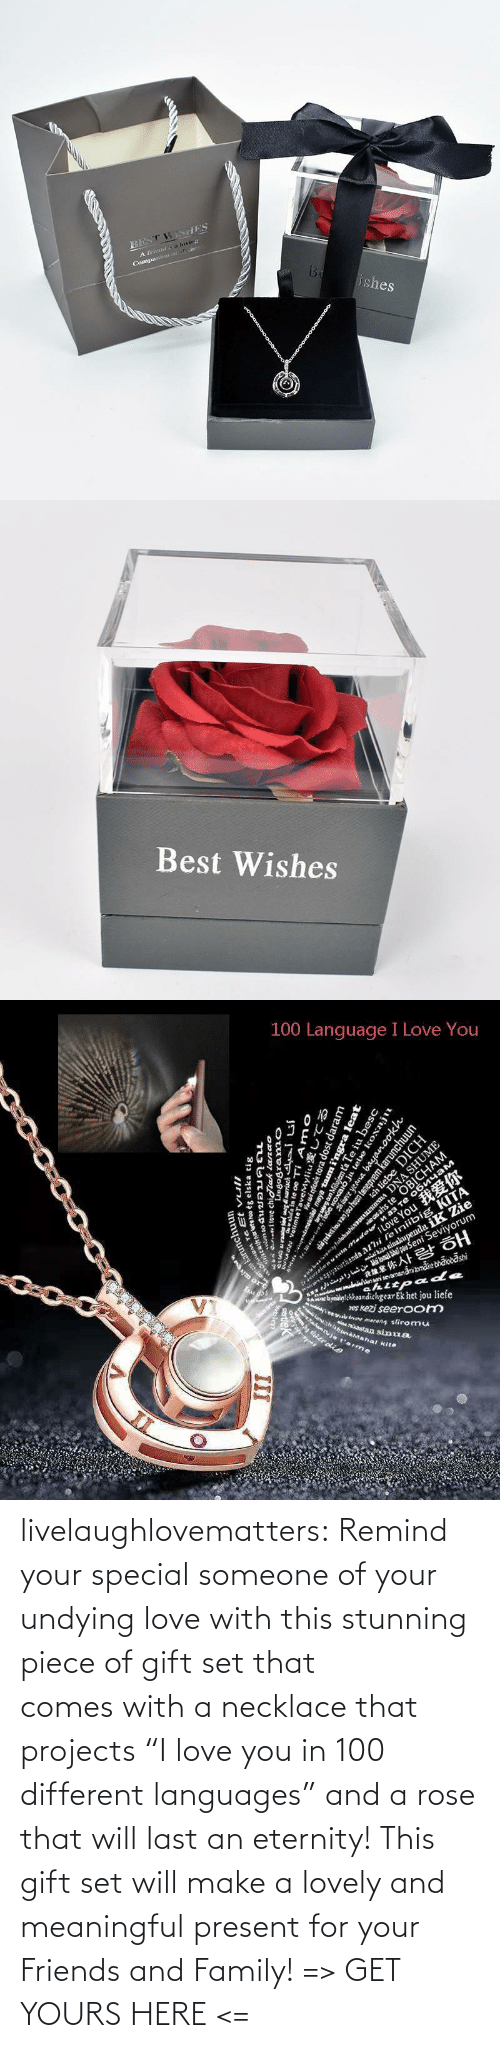 "Blog: livelaughlovematters:  Remind your special someone of your undying love with this stunning piece of gift set that comes with a necklace that projects ""I love you in 100 different languages"" and a rose that will last an eternity! This gift set will make a lovely and meaningful present for your Friends and Family! => GET YOURS HERE <="